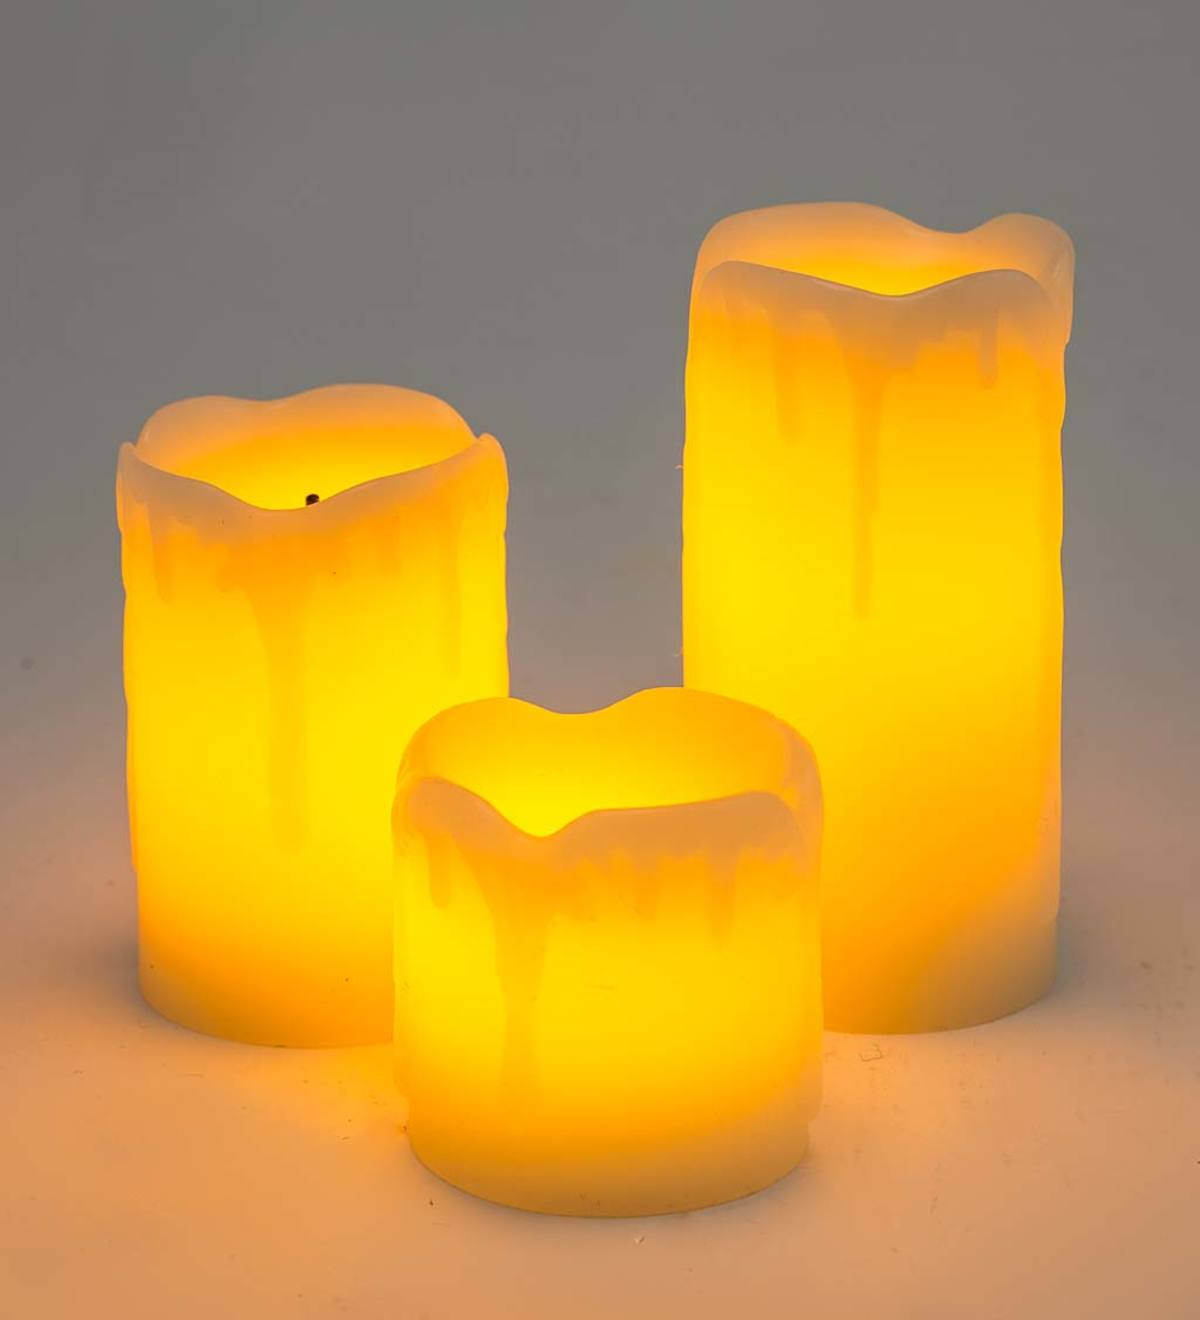 Mini Melted Flameless LED Pillar Candles, Set of 3